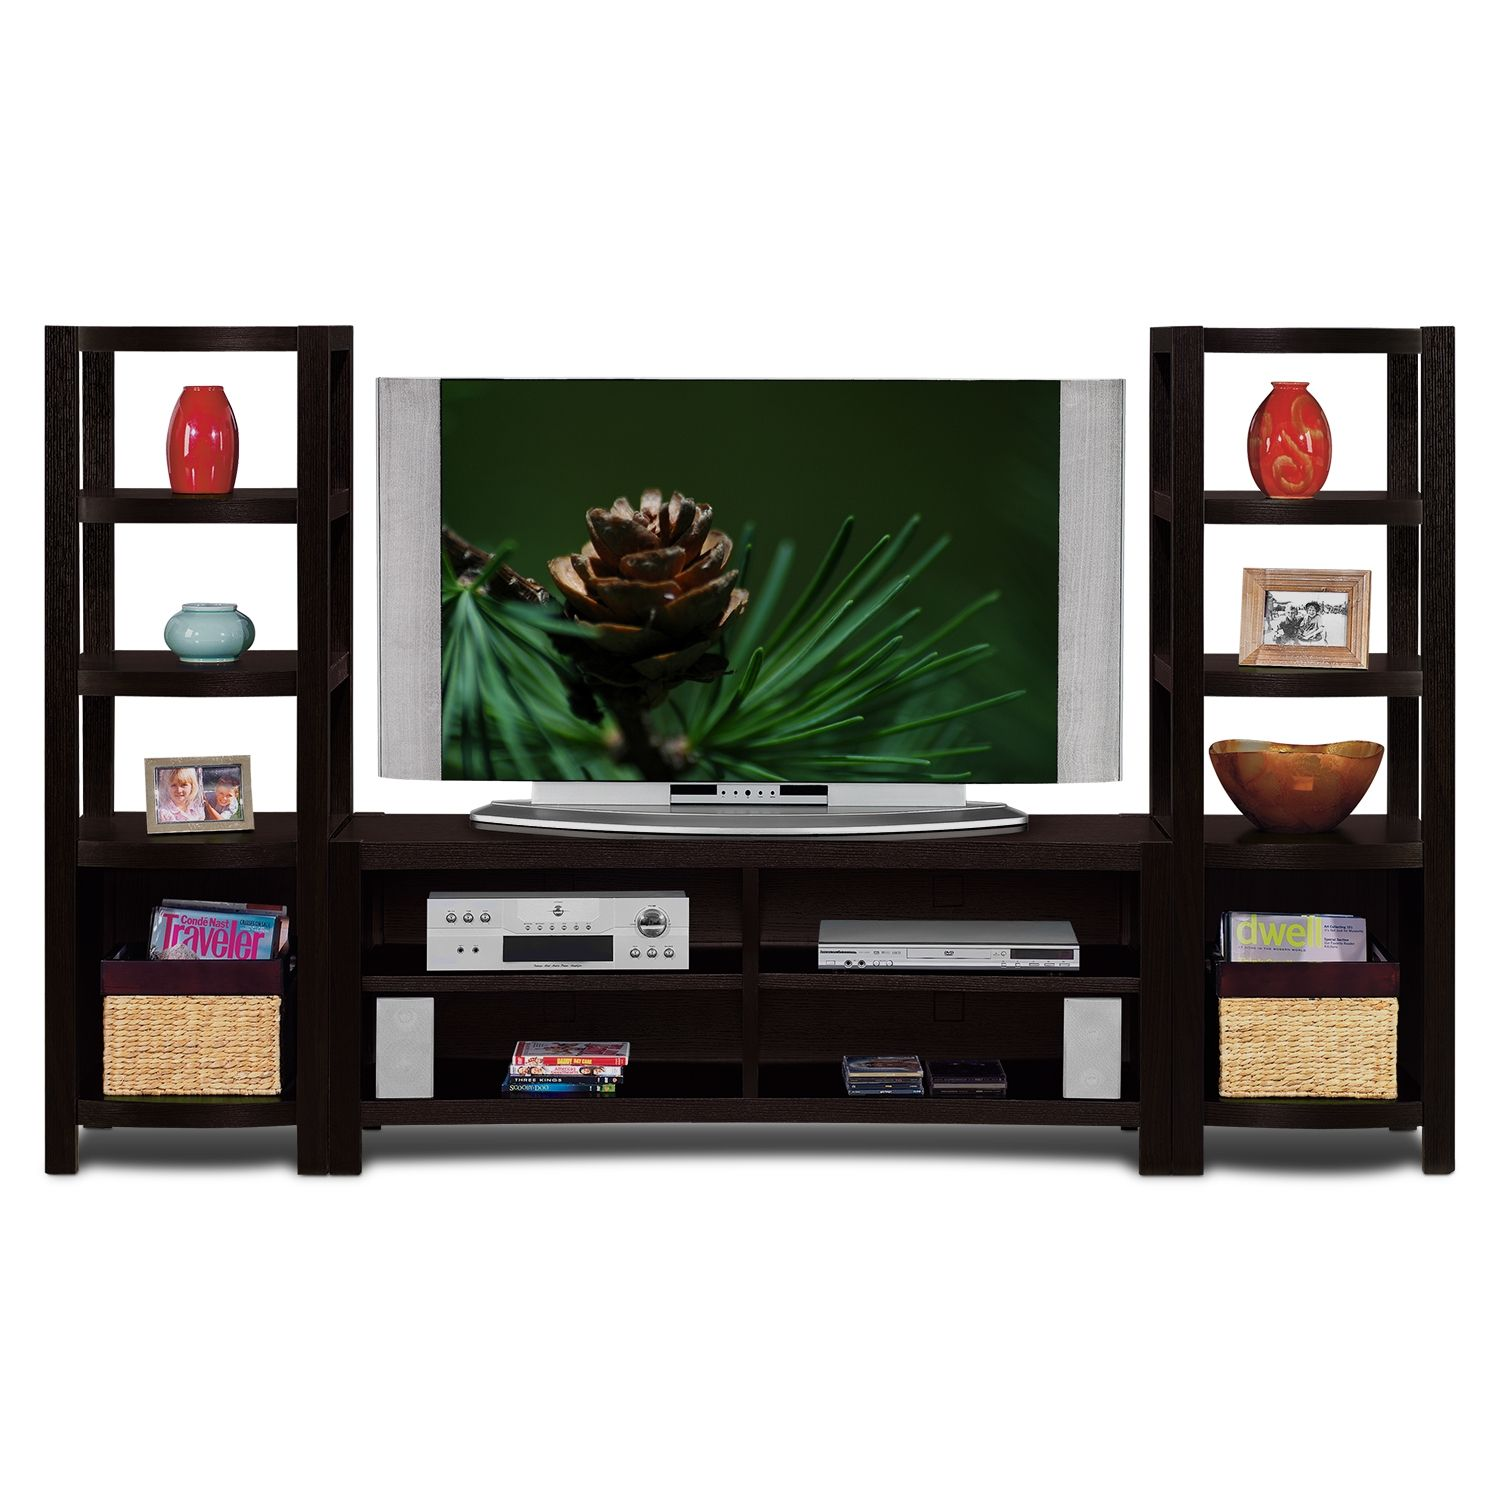 Townsend Entertainment Wall Units 3 Pc. Entertainment Wall Unit   Value  City Furniture